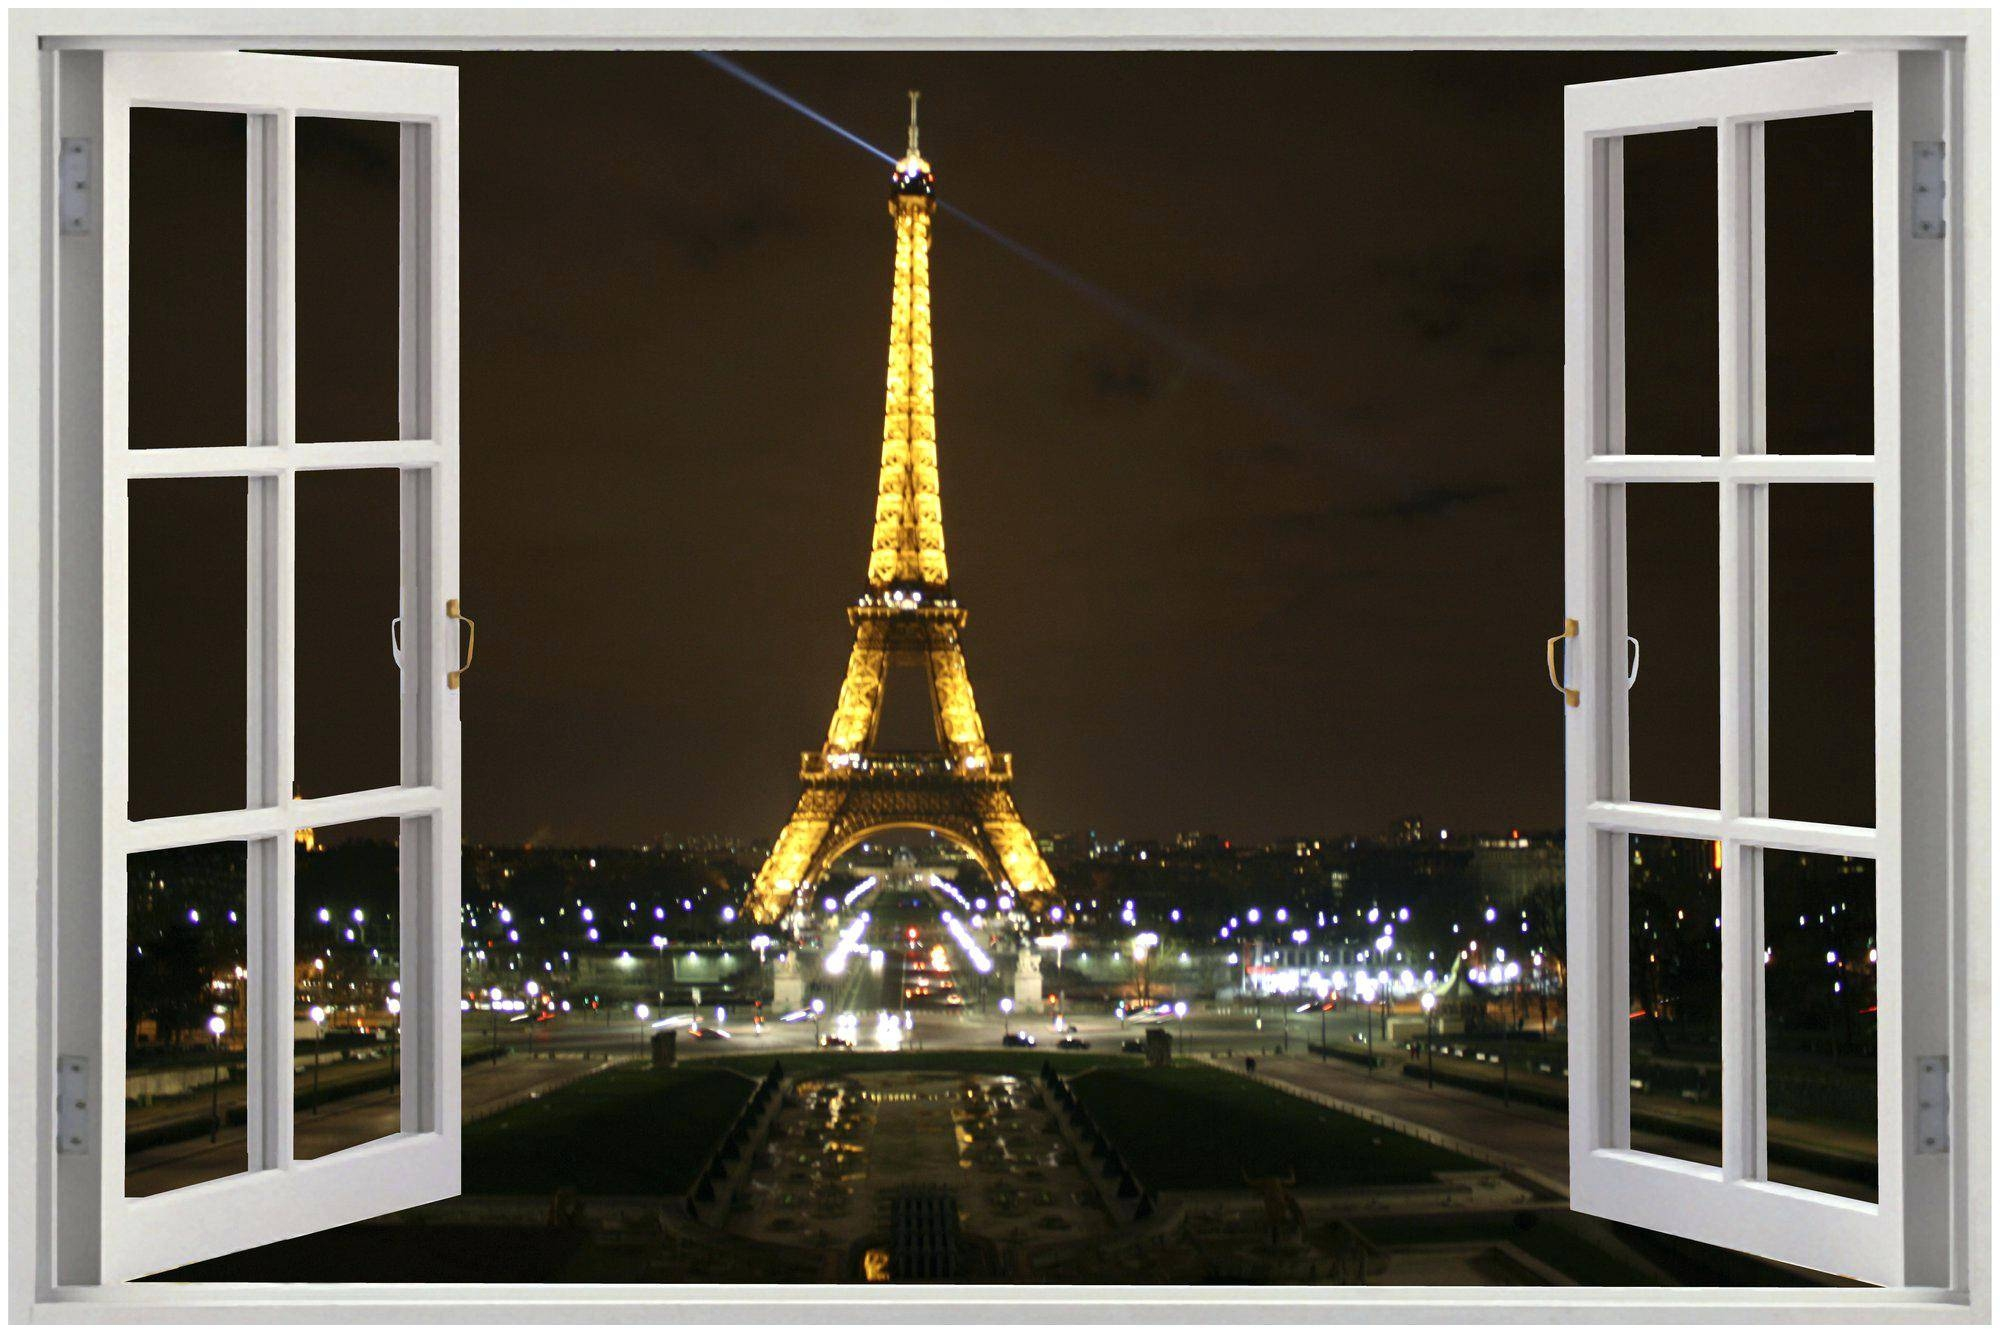 Wall Ideas : Eiffel Tower Wall Art With Lights Eiffel Tower Wall In Most Recent Metal Eiffel Tower Wall Art (View 27 of 30)